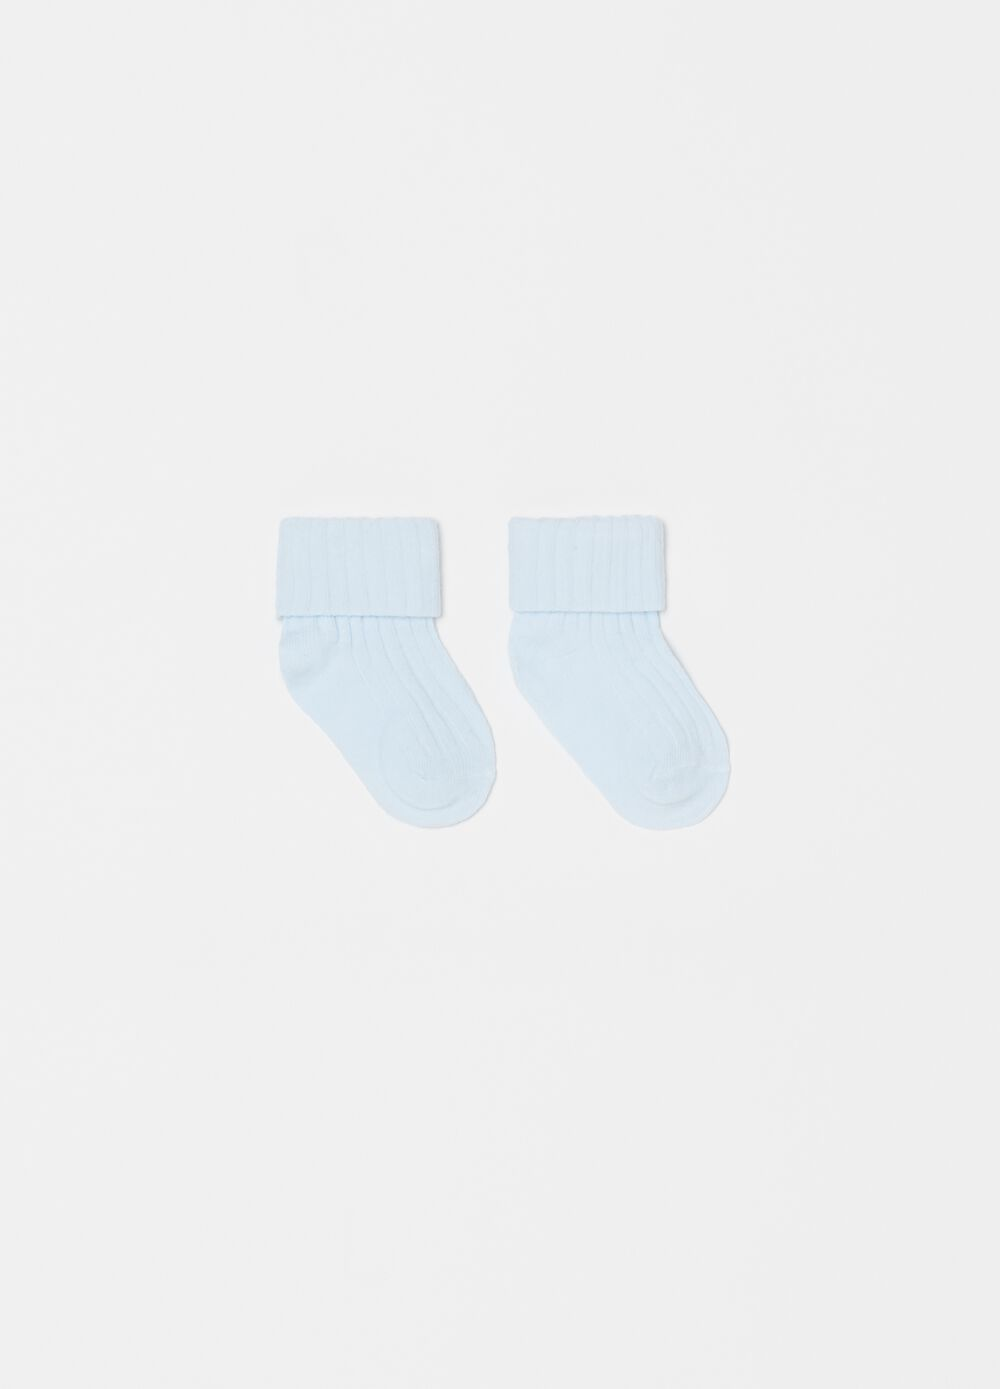 Short socks with fold and striped weave